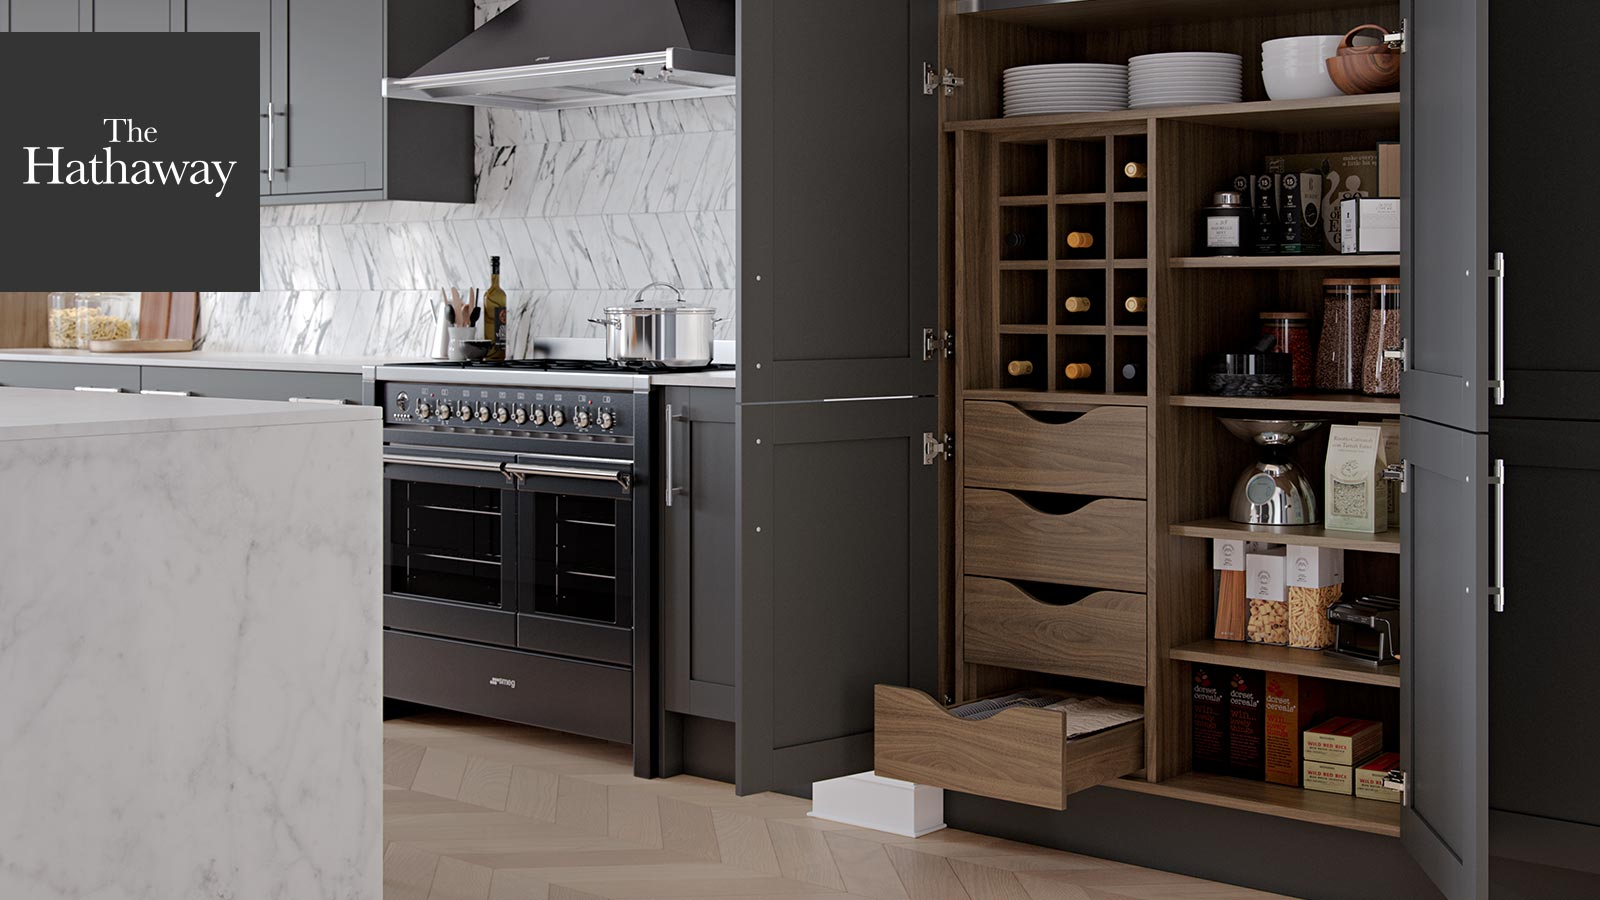 The Hathaway Kitchen Pantry Storage - Perfect For Zoning Your space